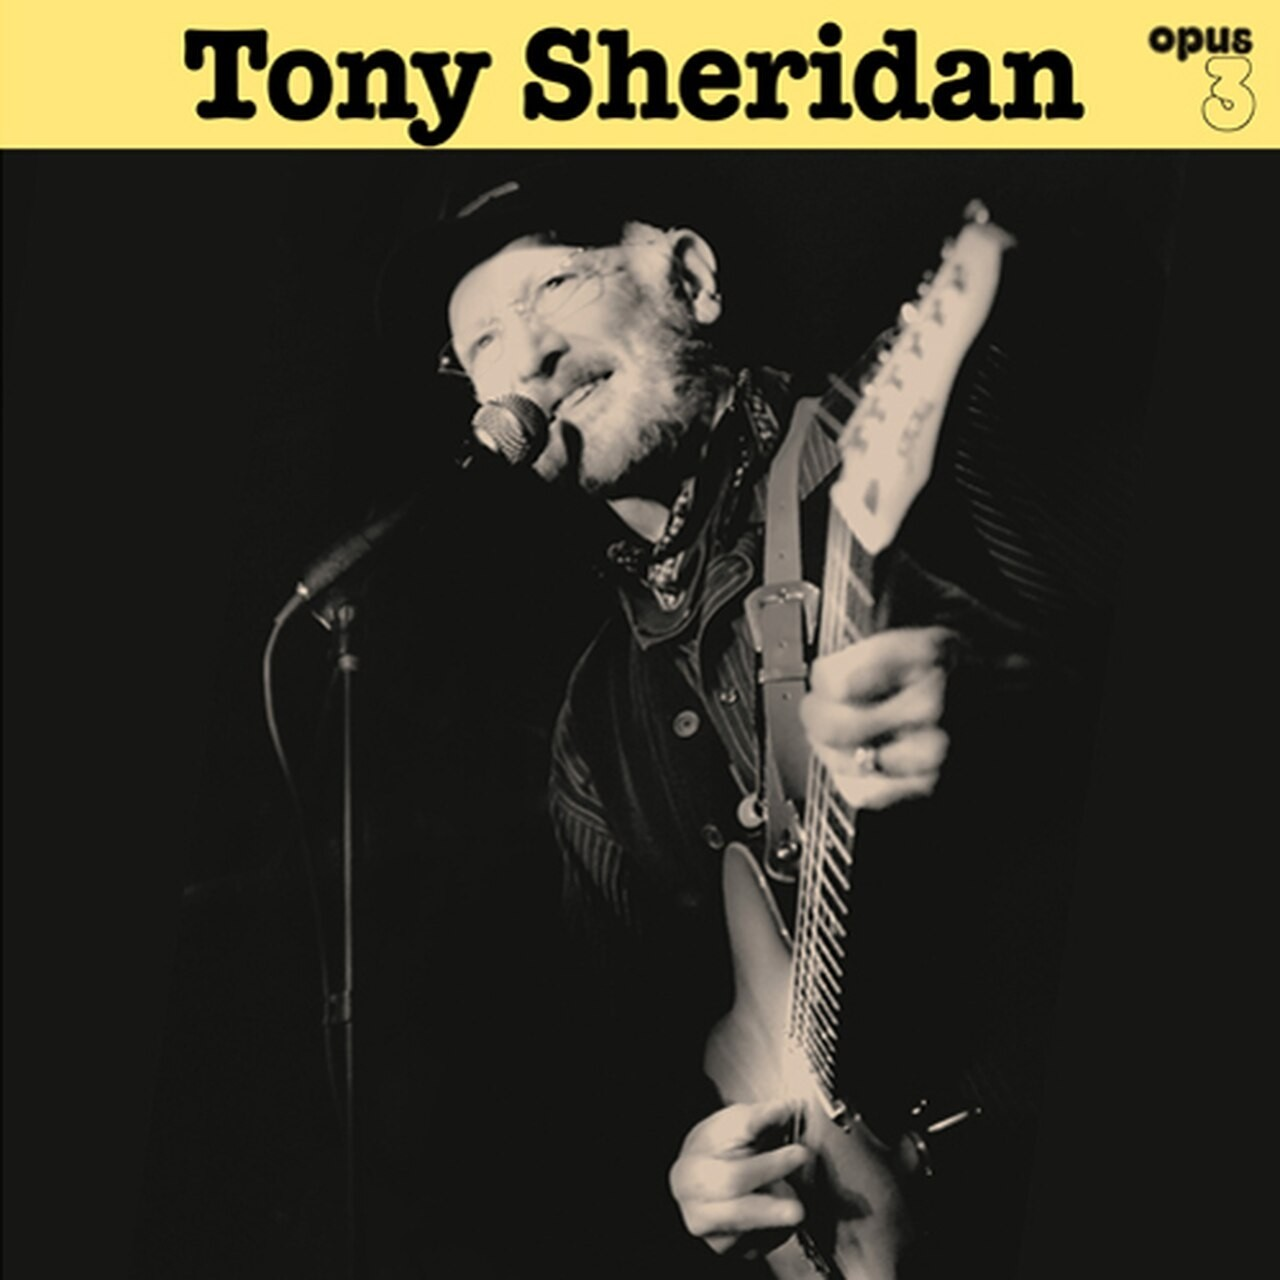 Tony Sheridan - Tony Sheridan and Opus 3 Artists